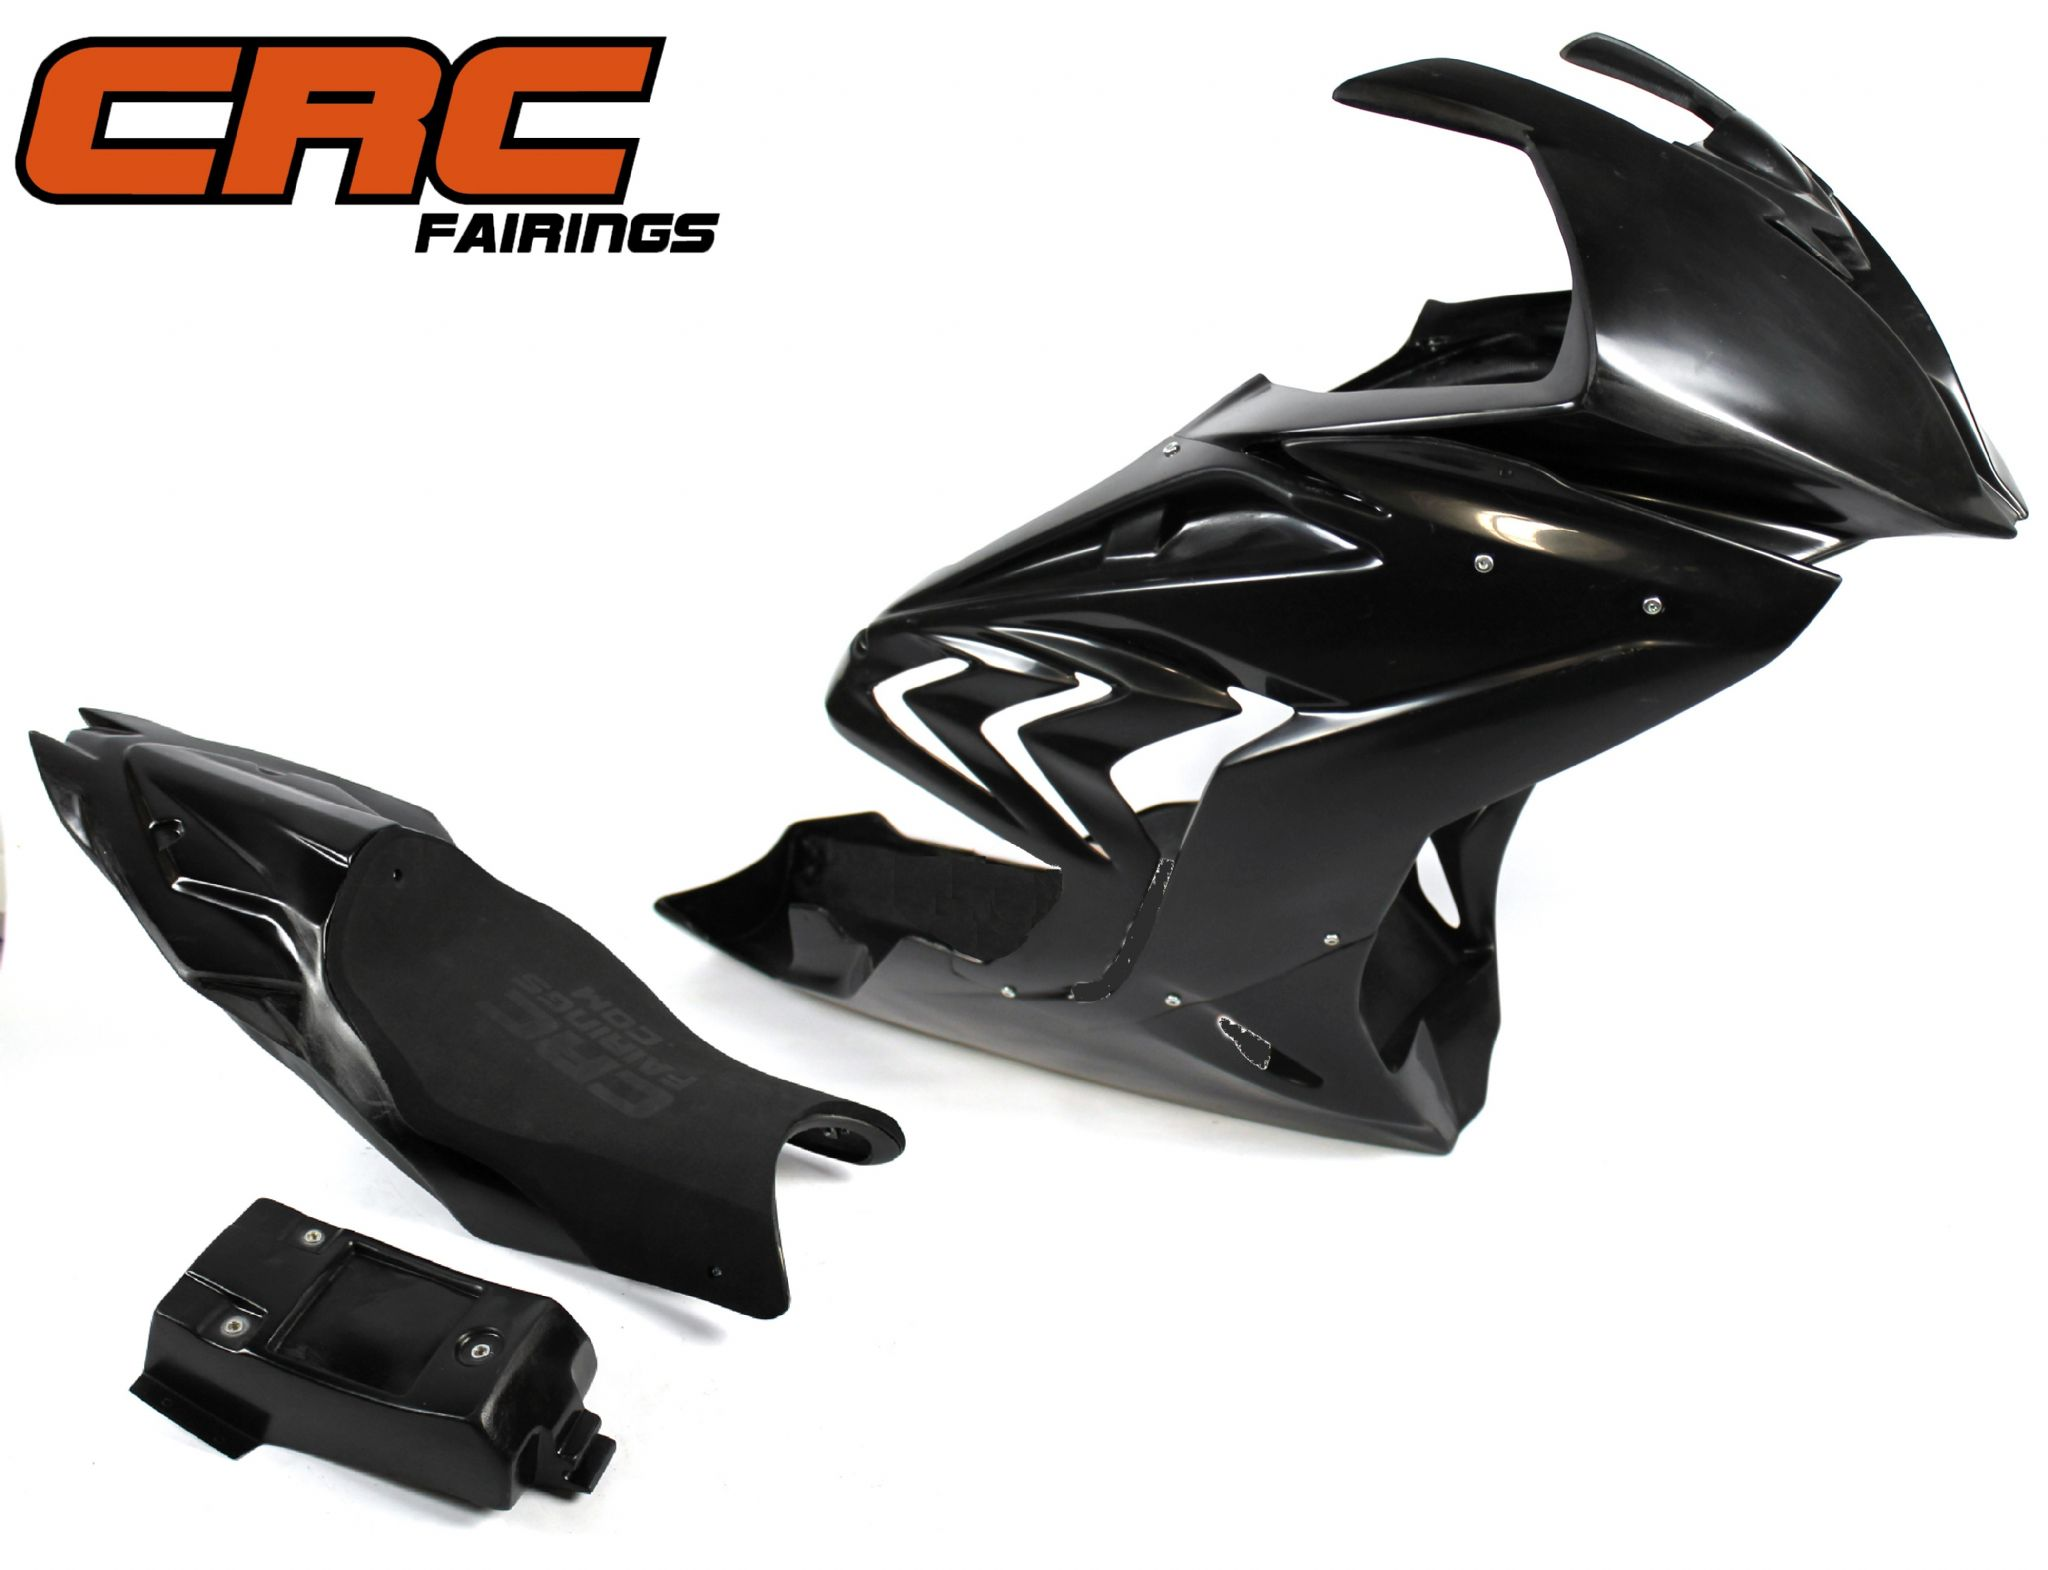 Crc Fairings Bmw S1000 2012 Complete Set Of Race Fairings With